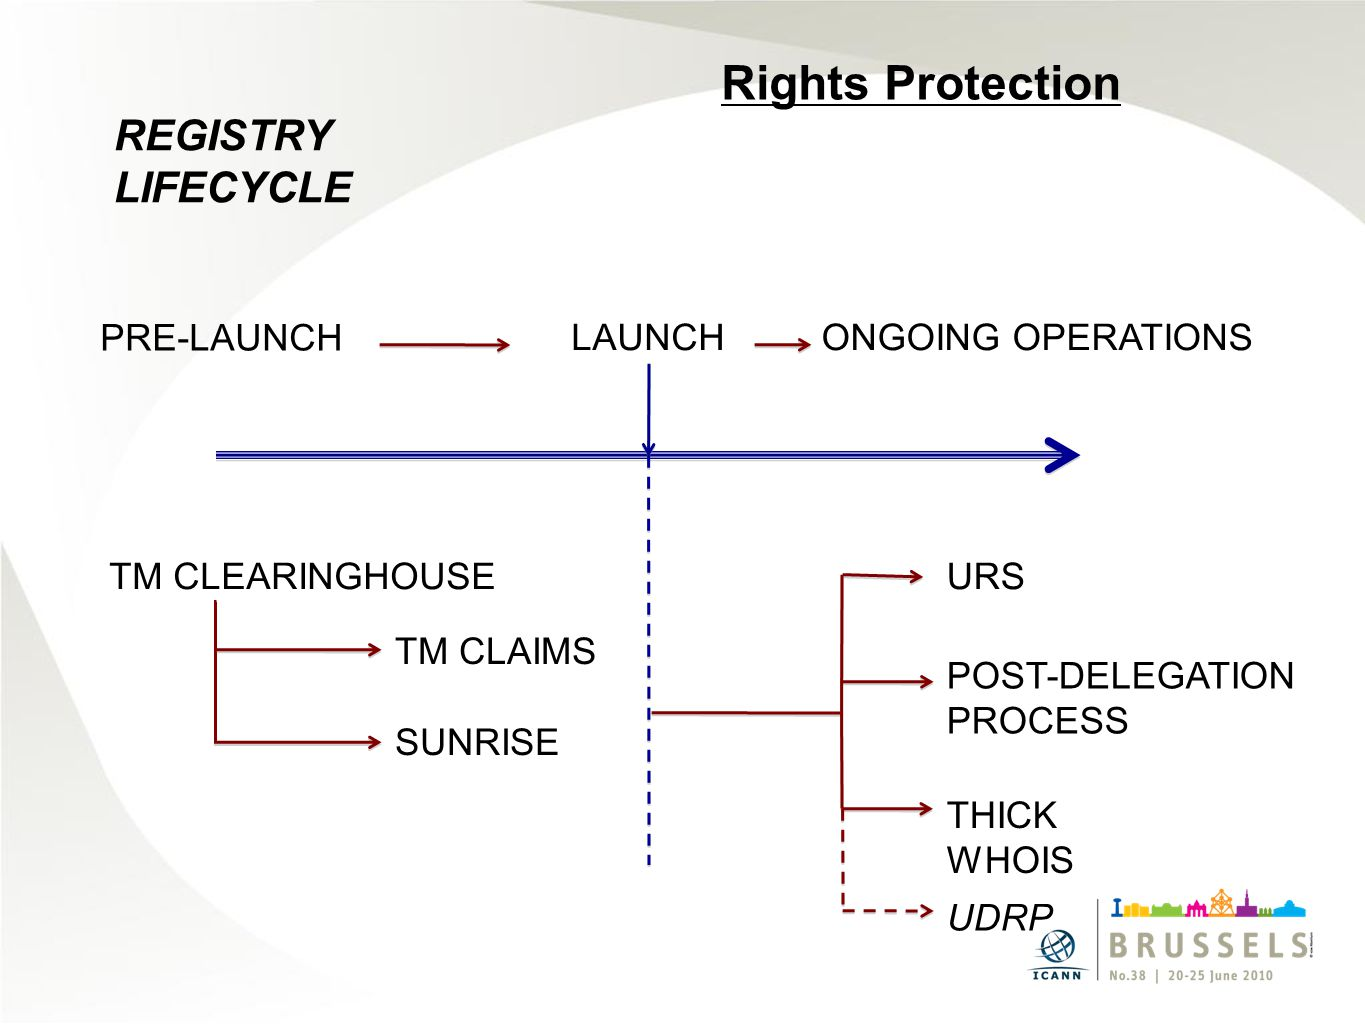 REGISTRY LIFECYCLE PRE-LAUNCH LAUNCHONGOING OPERATIONS TM CLEARINGHOUSEURS POST-DELEGATION PROCESS TM CLAIMS SUNRISE Rights Protection UDRP THICK WHOI